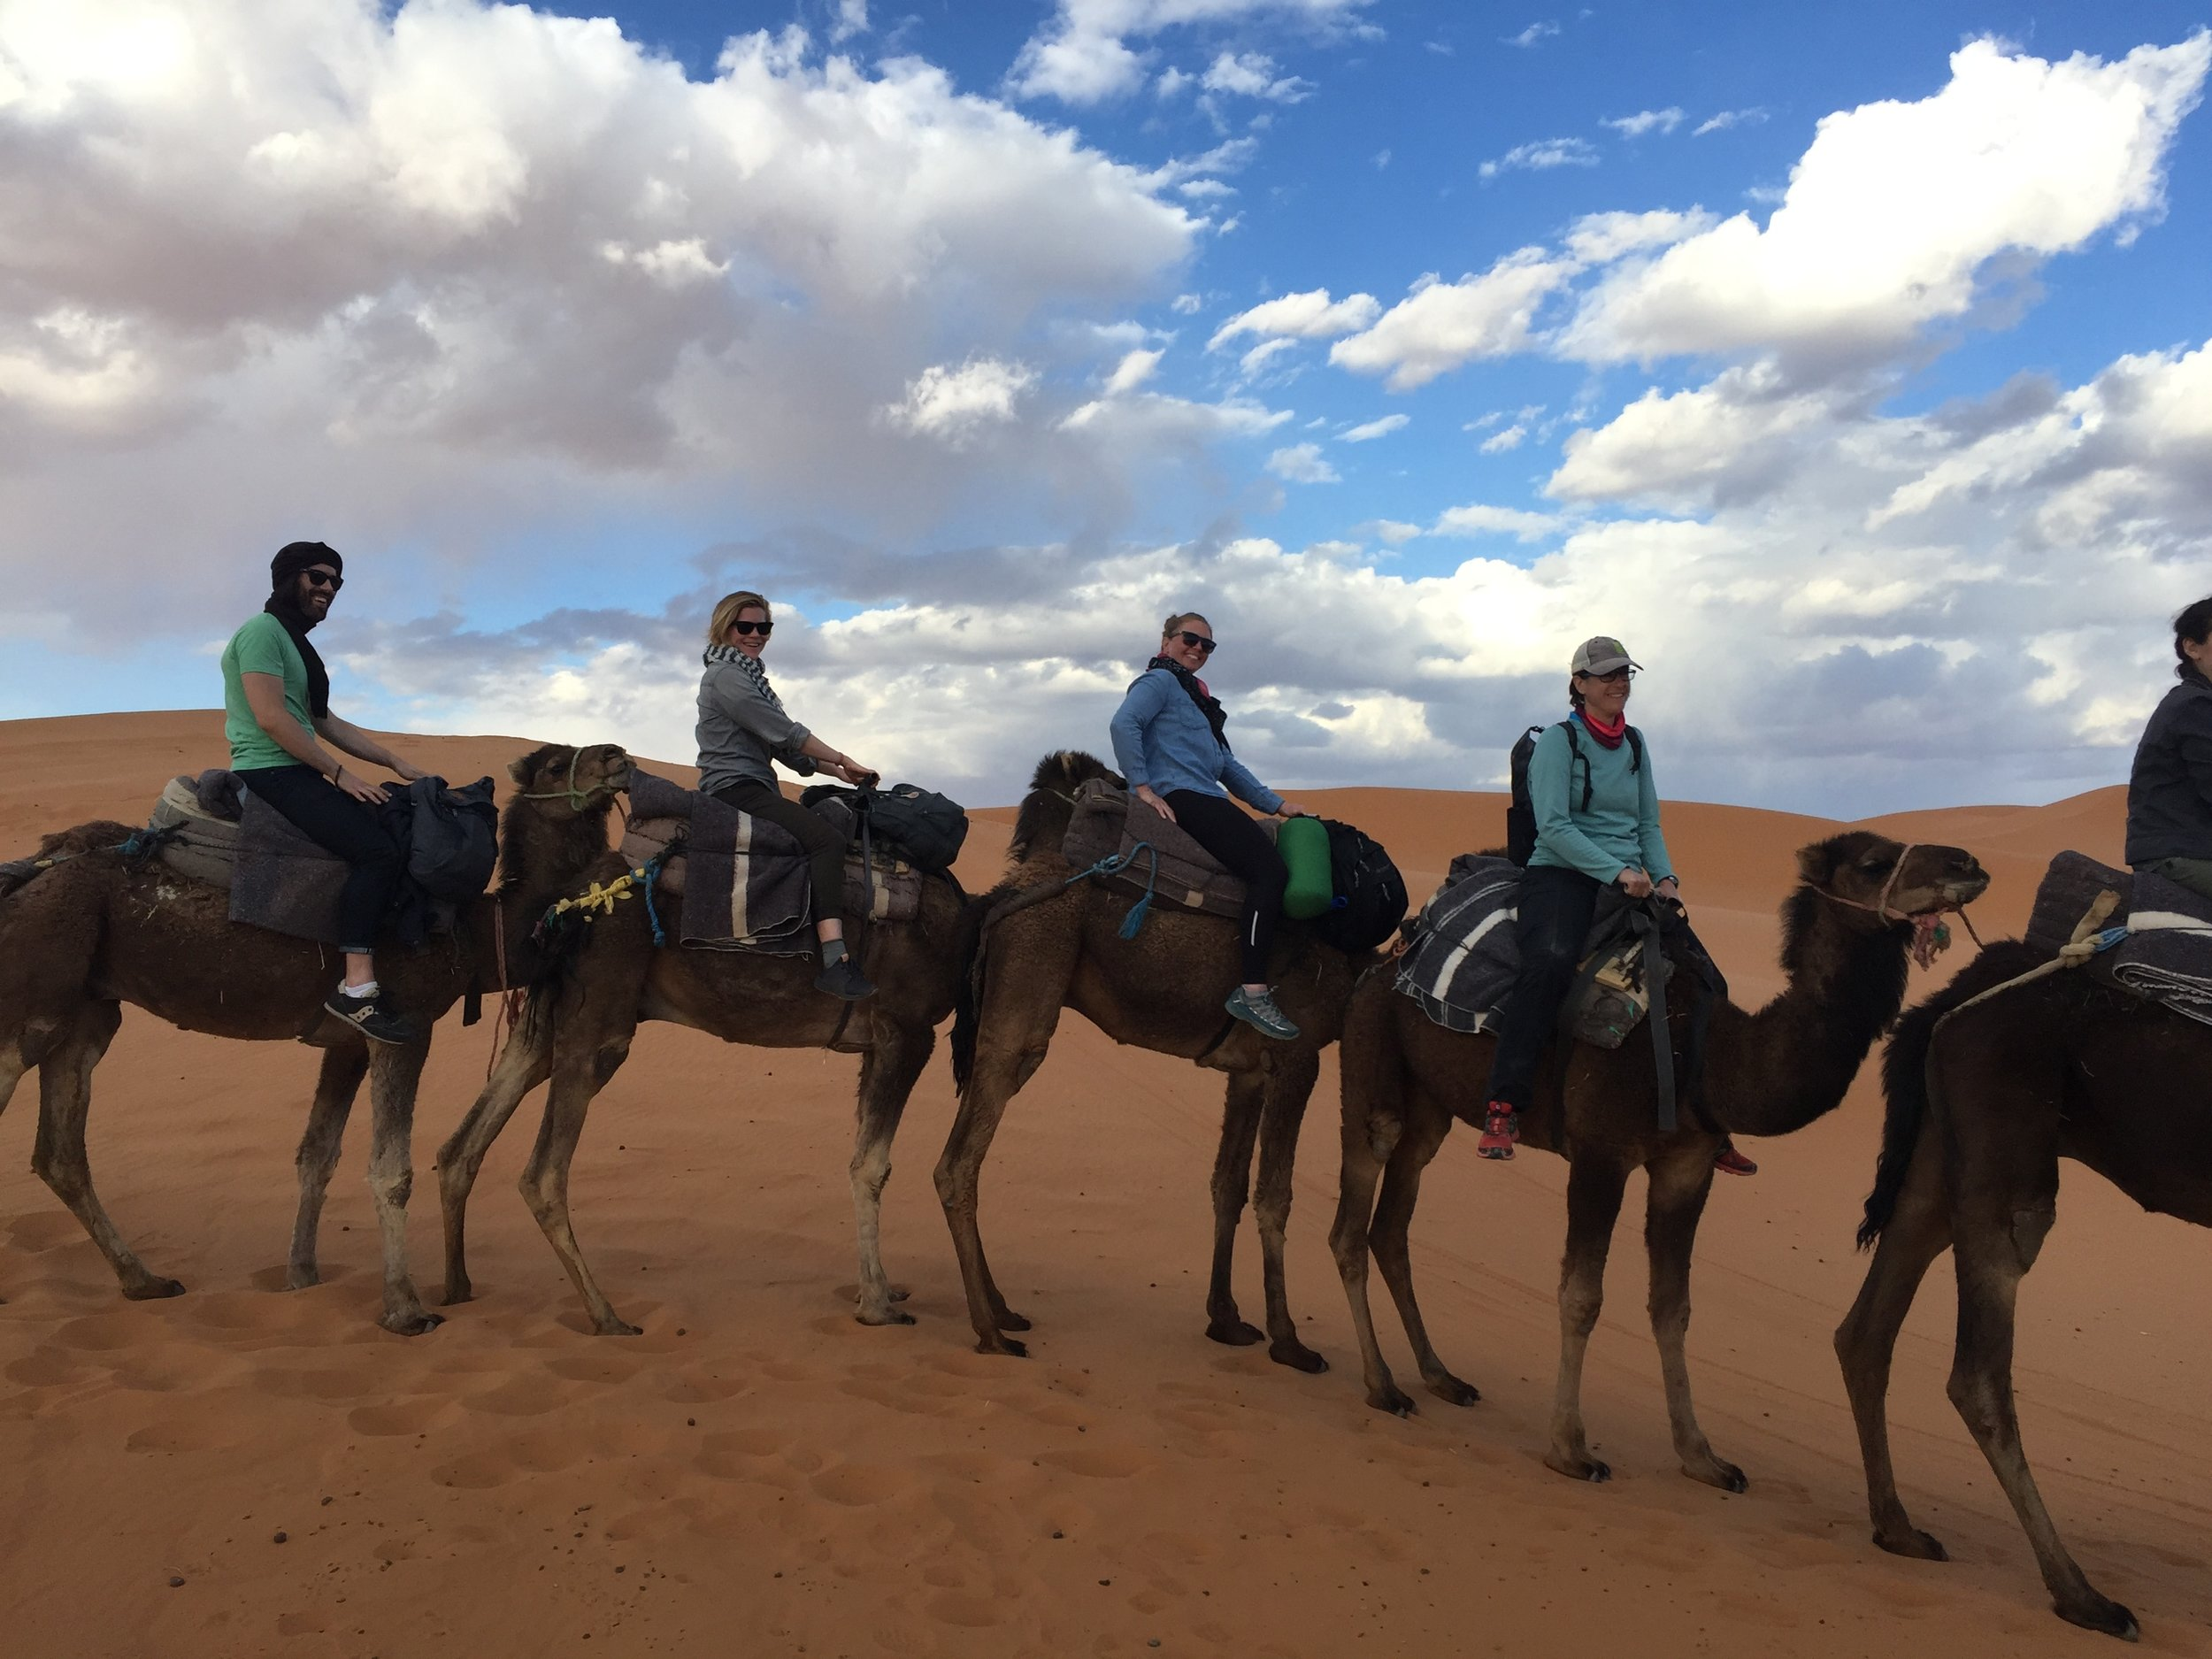 Americans! On camels!